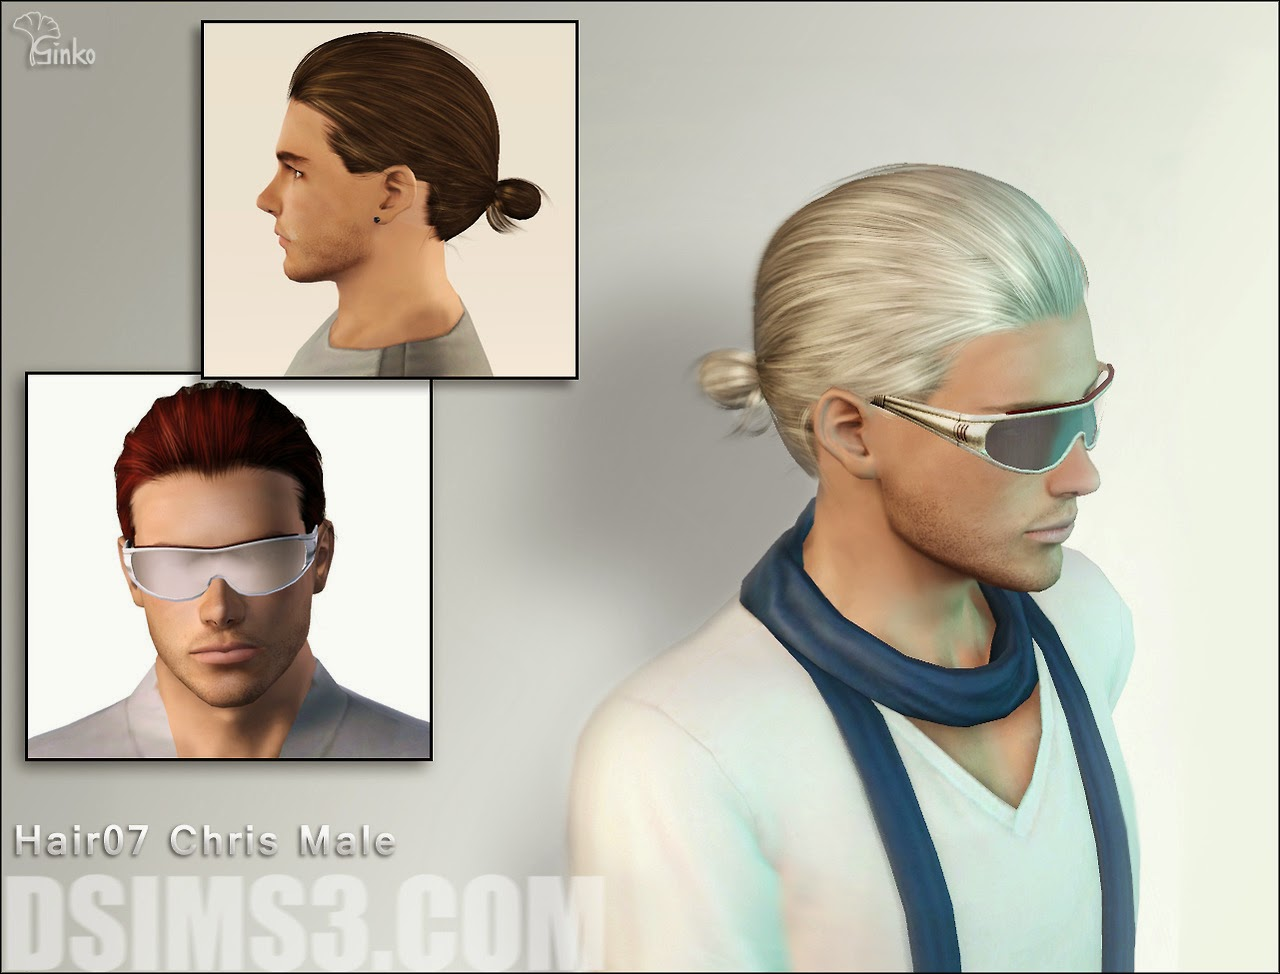 My Sims 3 Blog: Ginko Chris Hair for Males